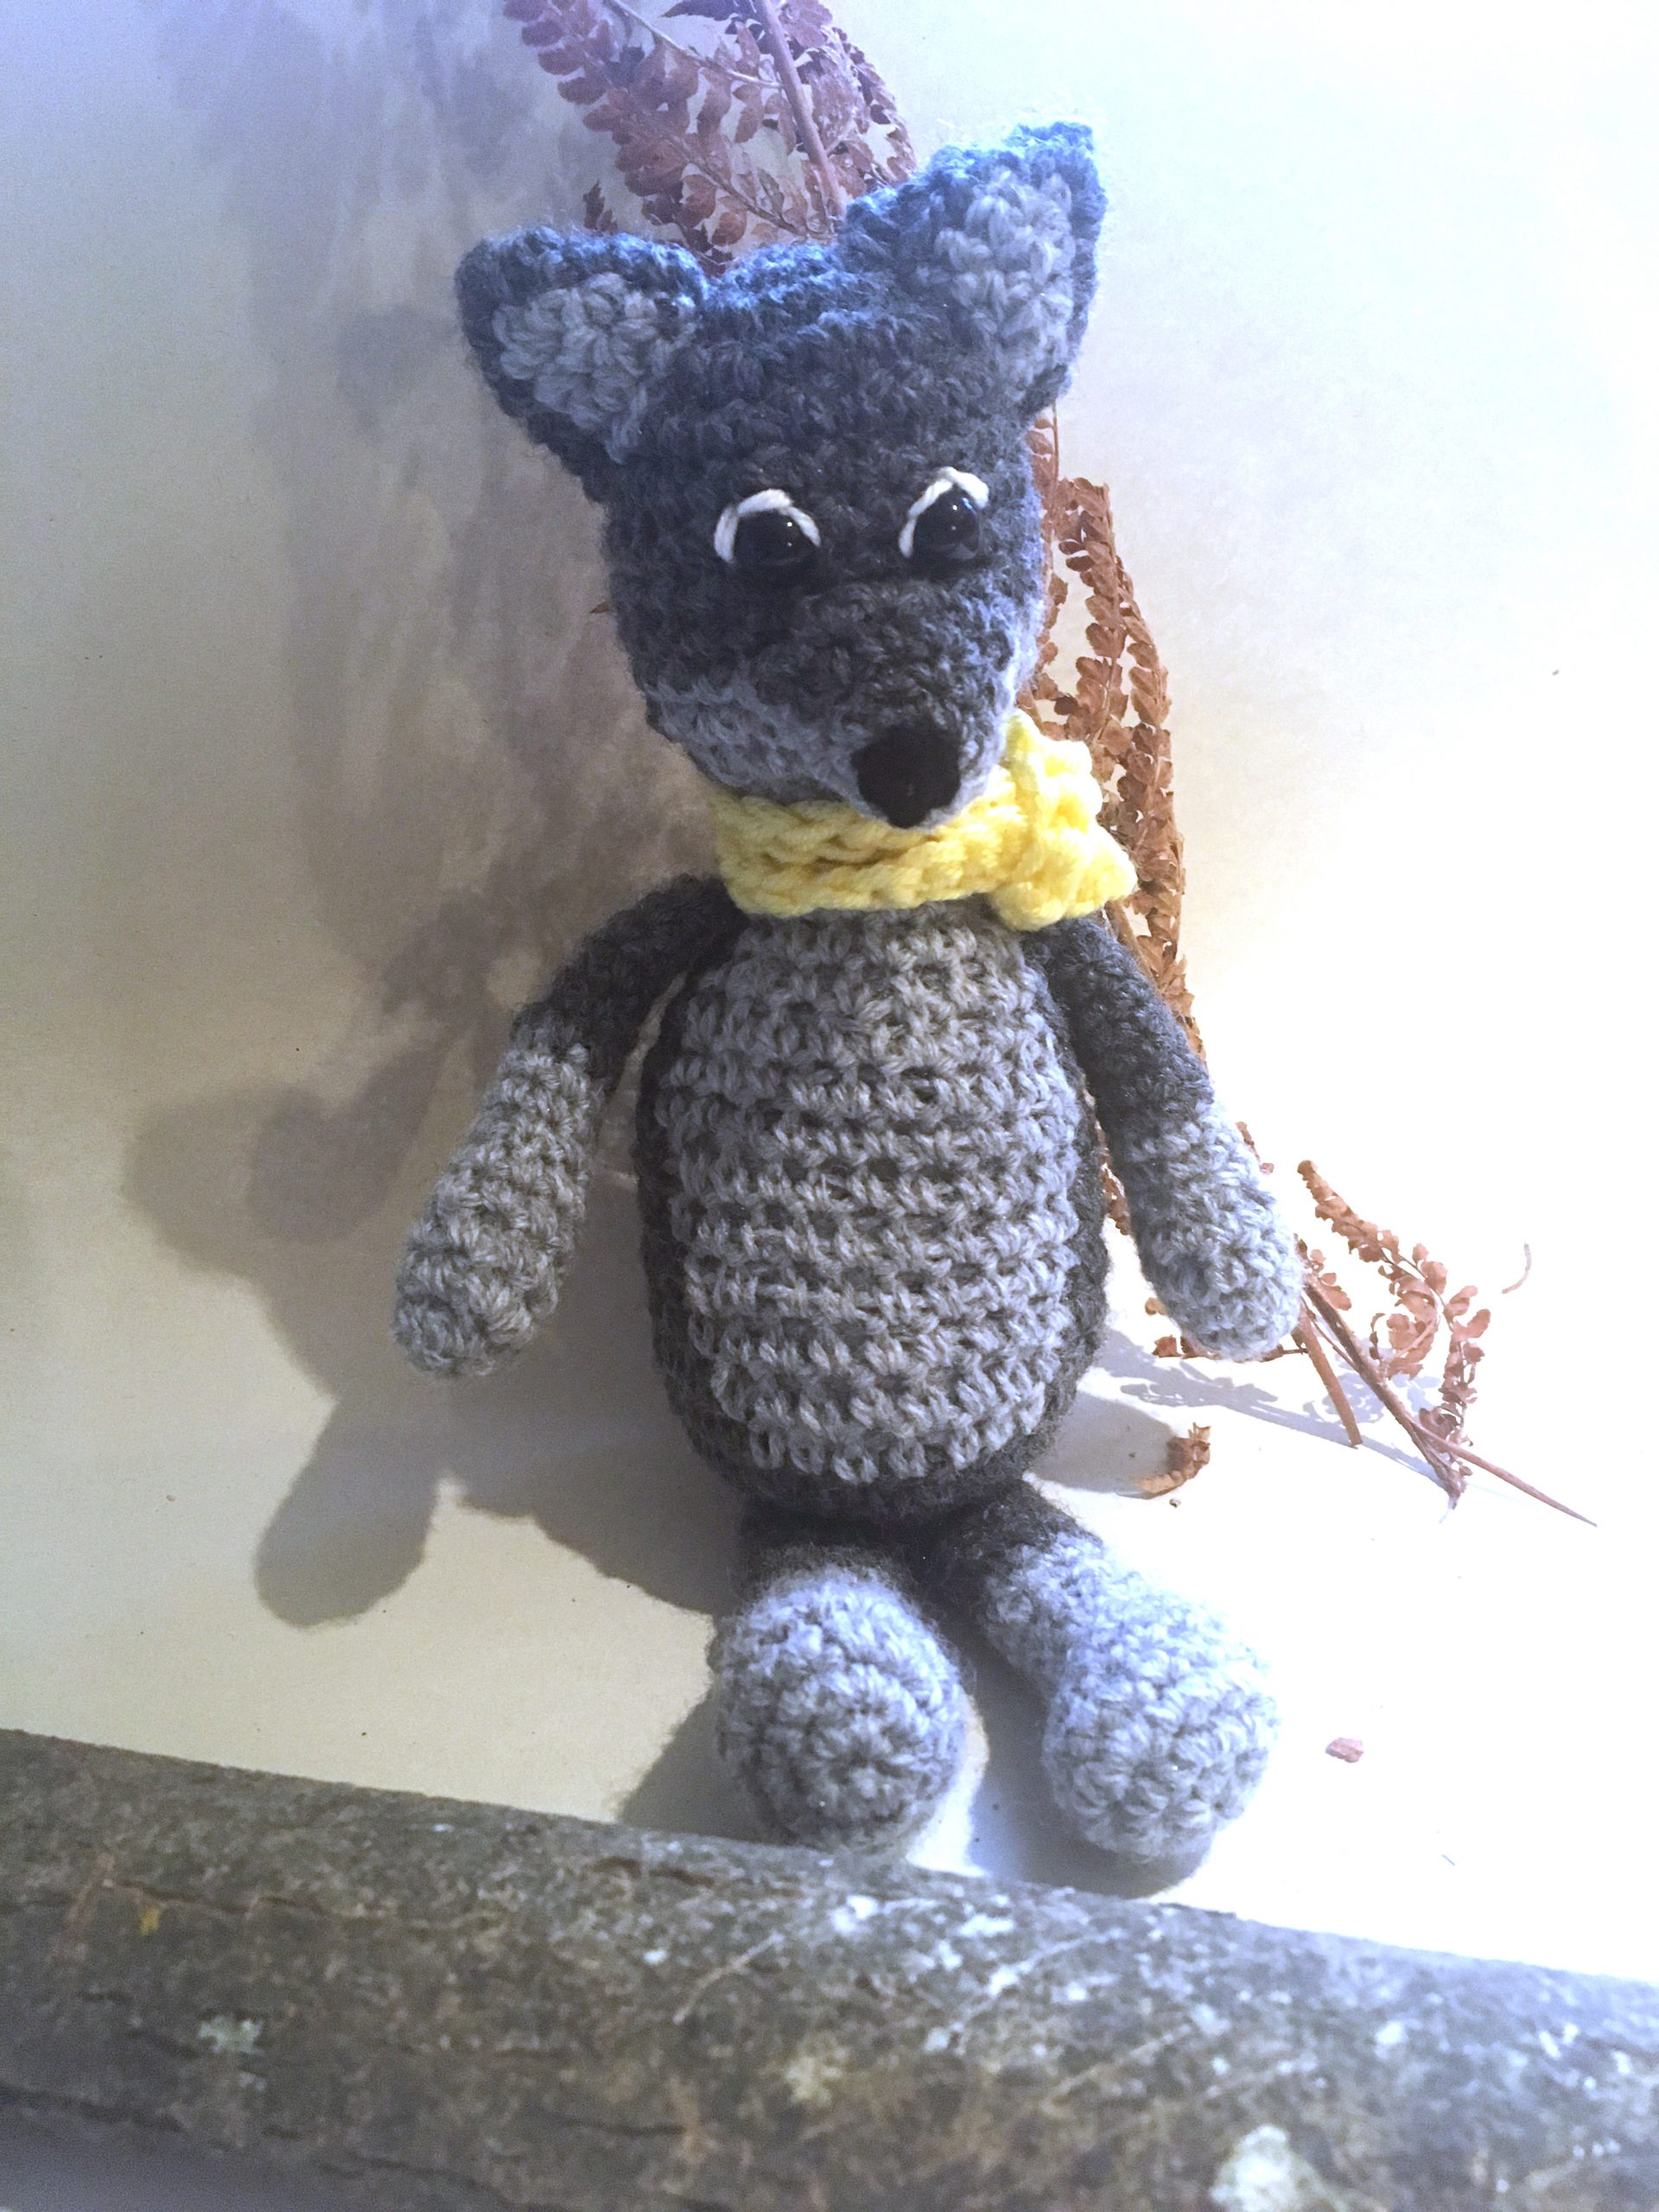 Crochet cute wolf. Does cuteness create empathy with or misunderstanding about real animals?